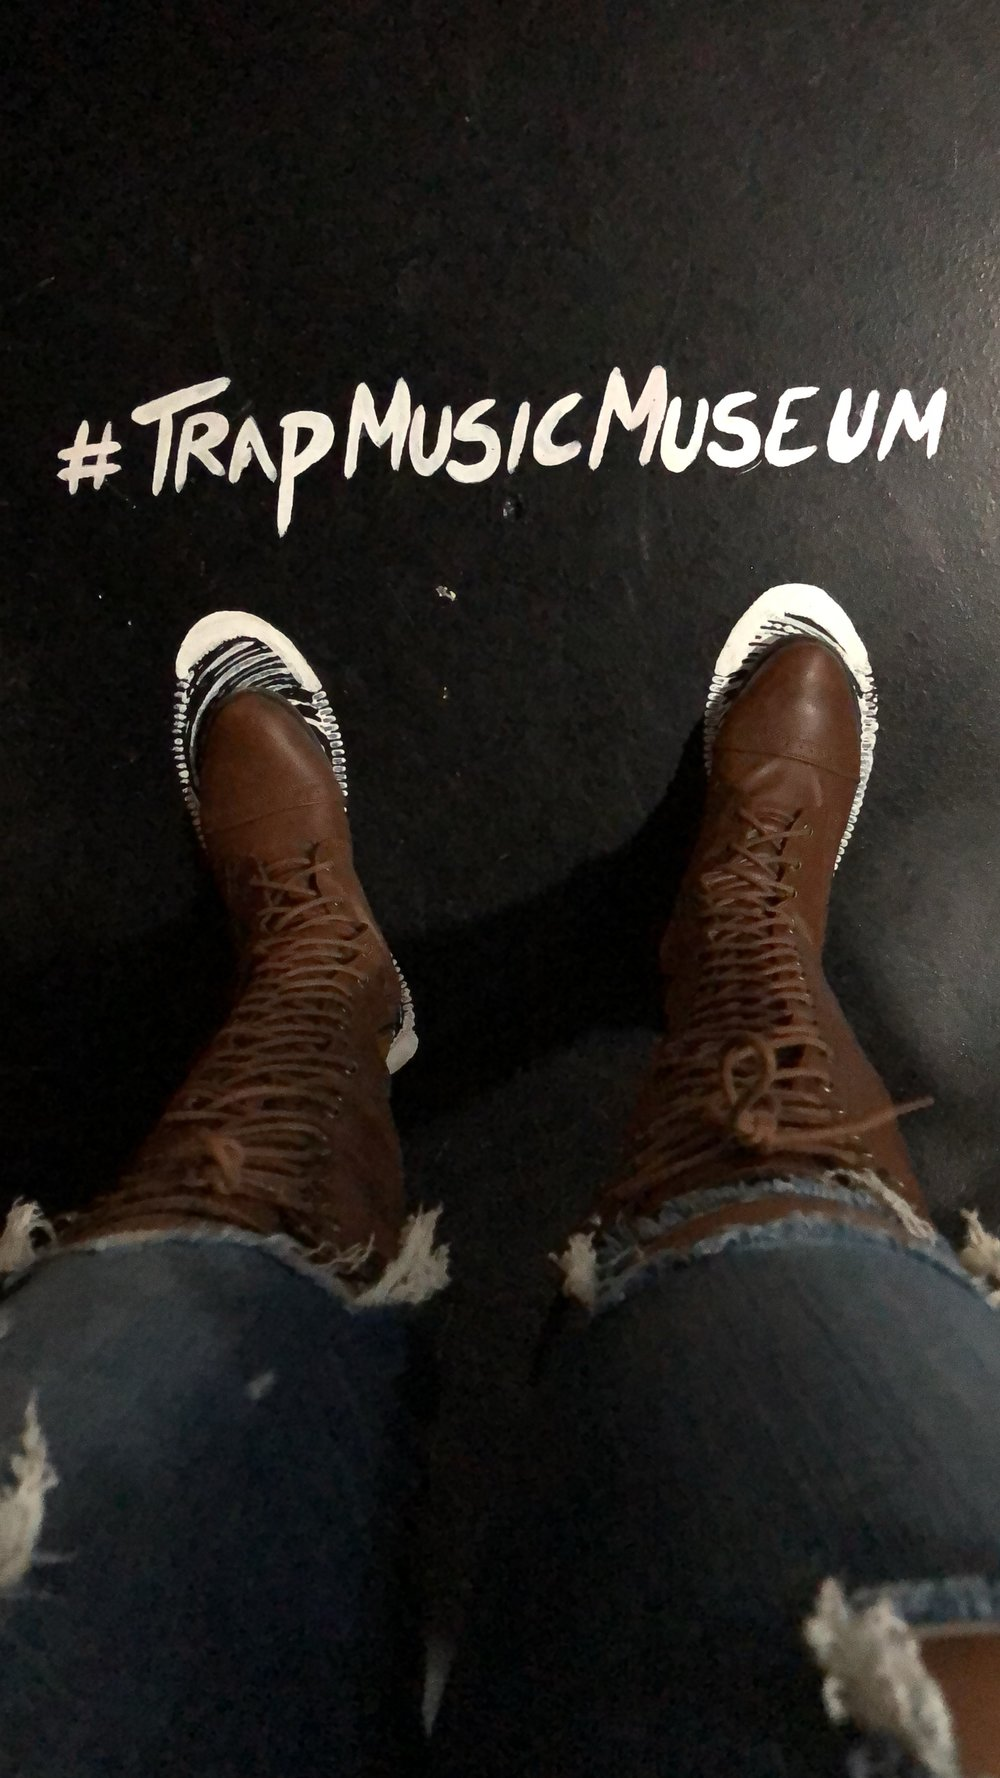 Jennifer J at the Trap Music Museum.